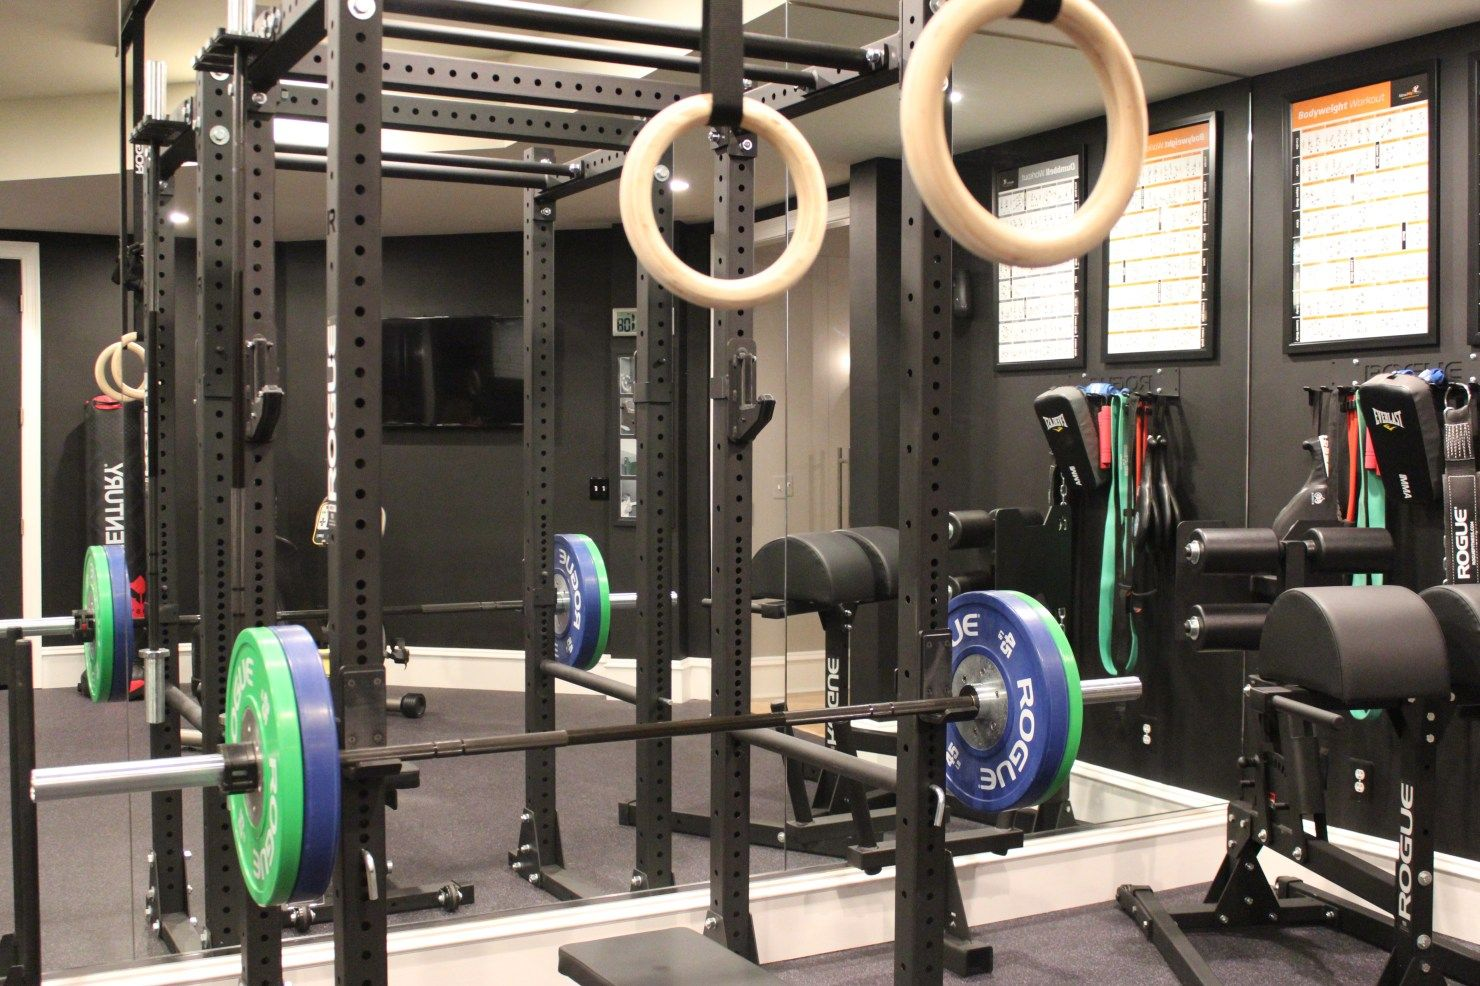 Building u201cThe Ultimate Home Gymu201d the Rogue